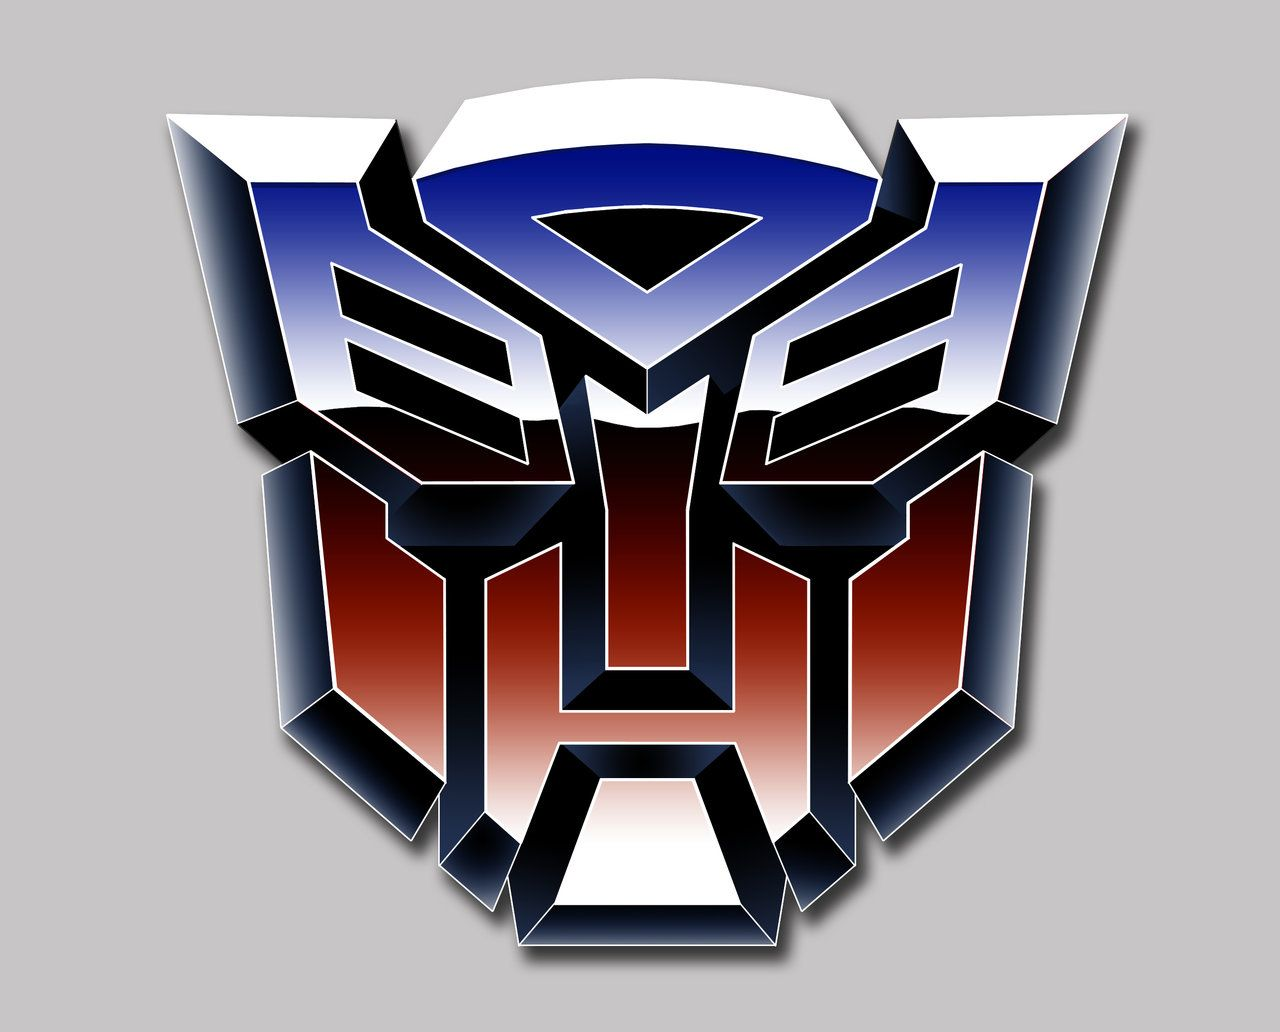 Transformers autobots logo cartoons pinterest a gallery of autobots symbols mifty is bored buycottarizona Image collections